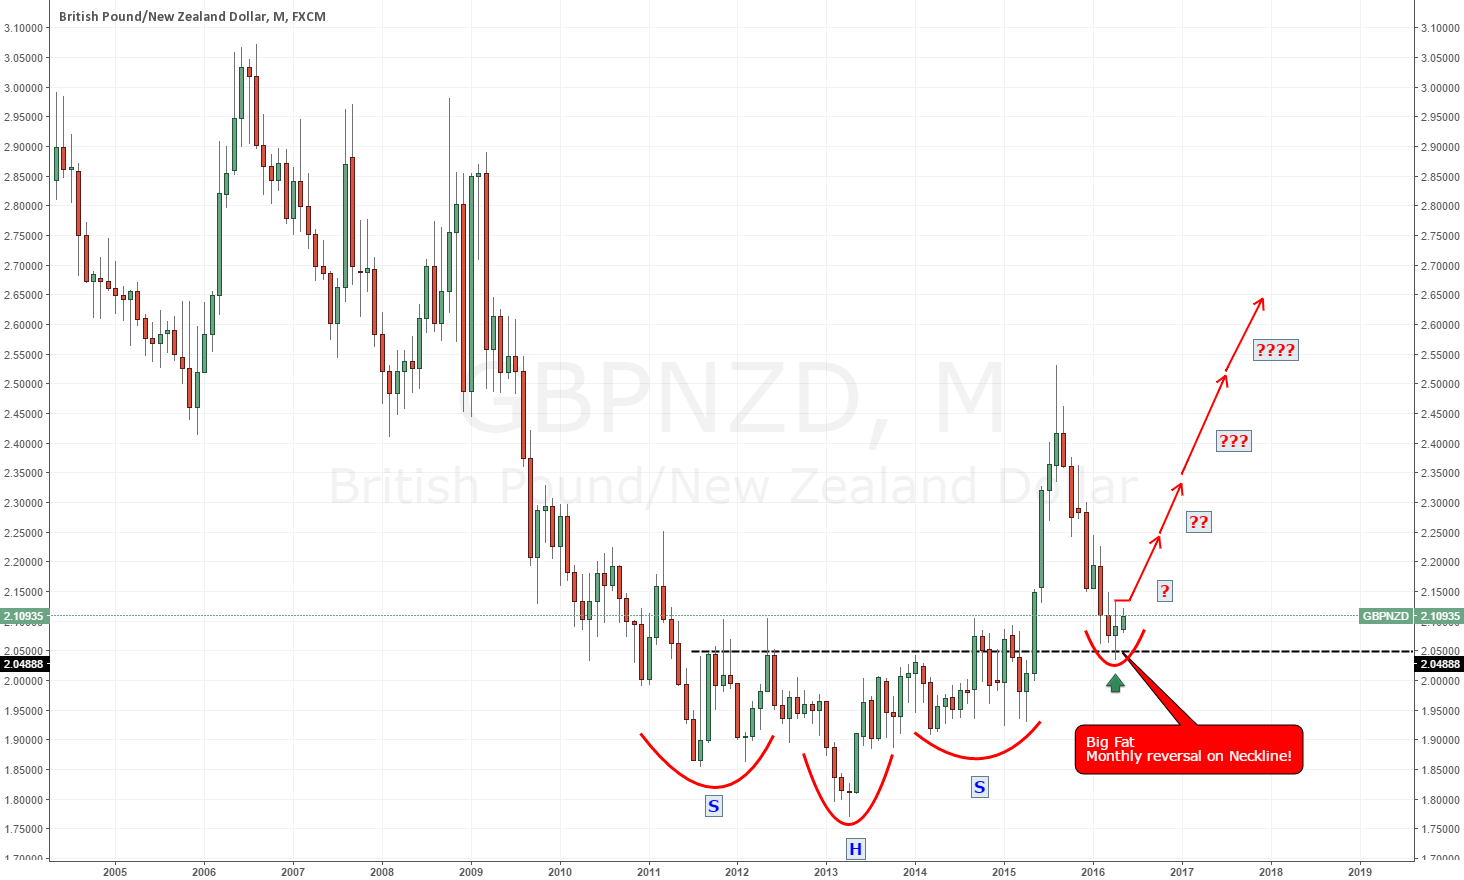 BIG FAT Monthly Reversal on GBP/NZD, LONG!